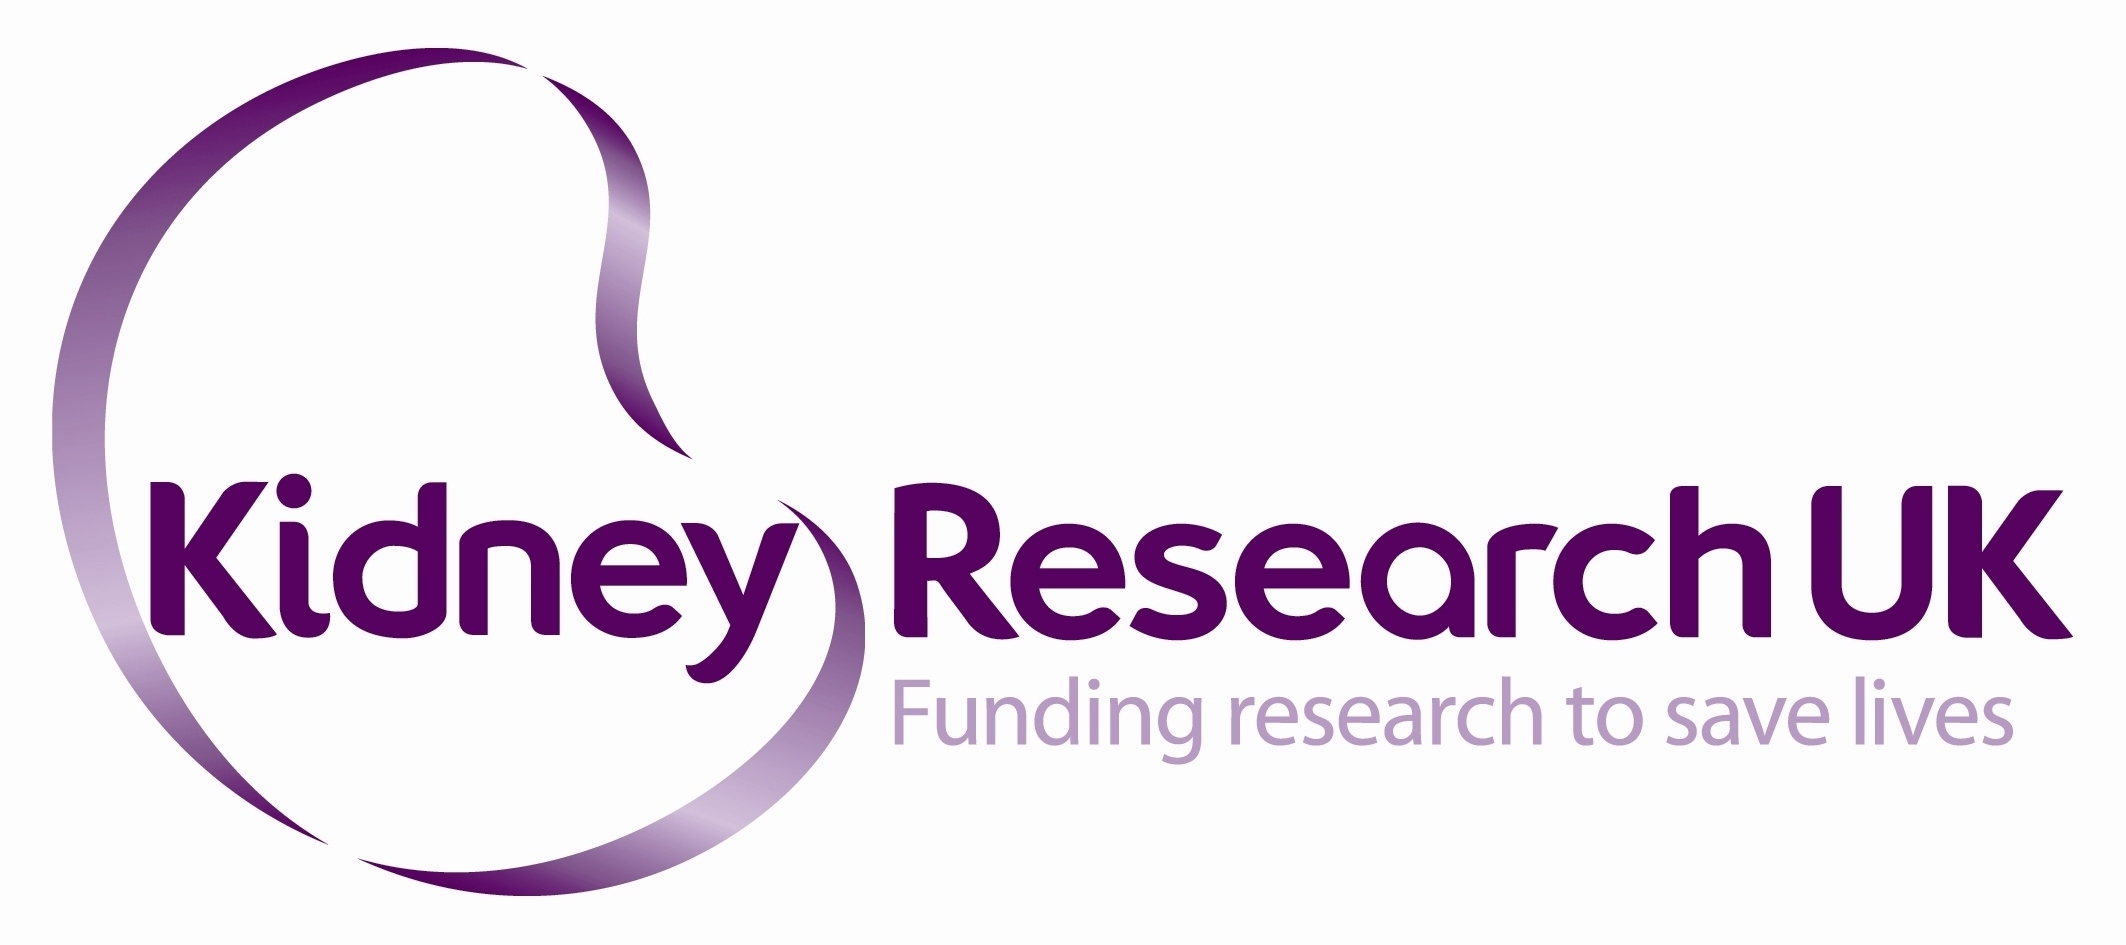 LOGO Kidney Research UK